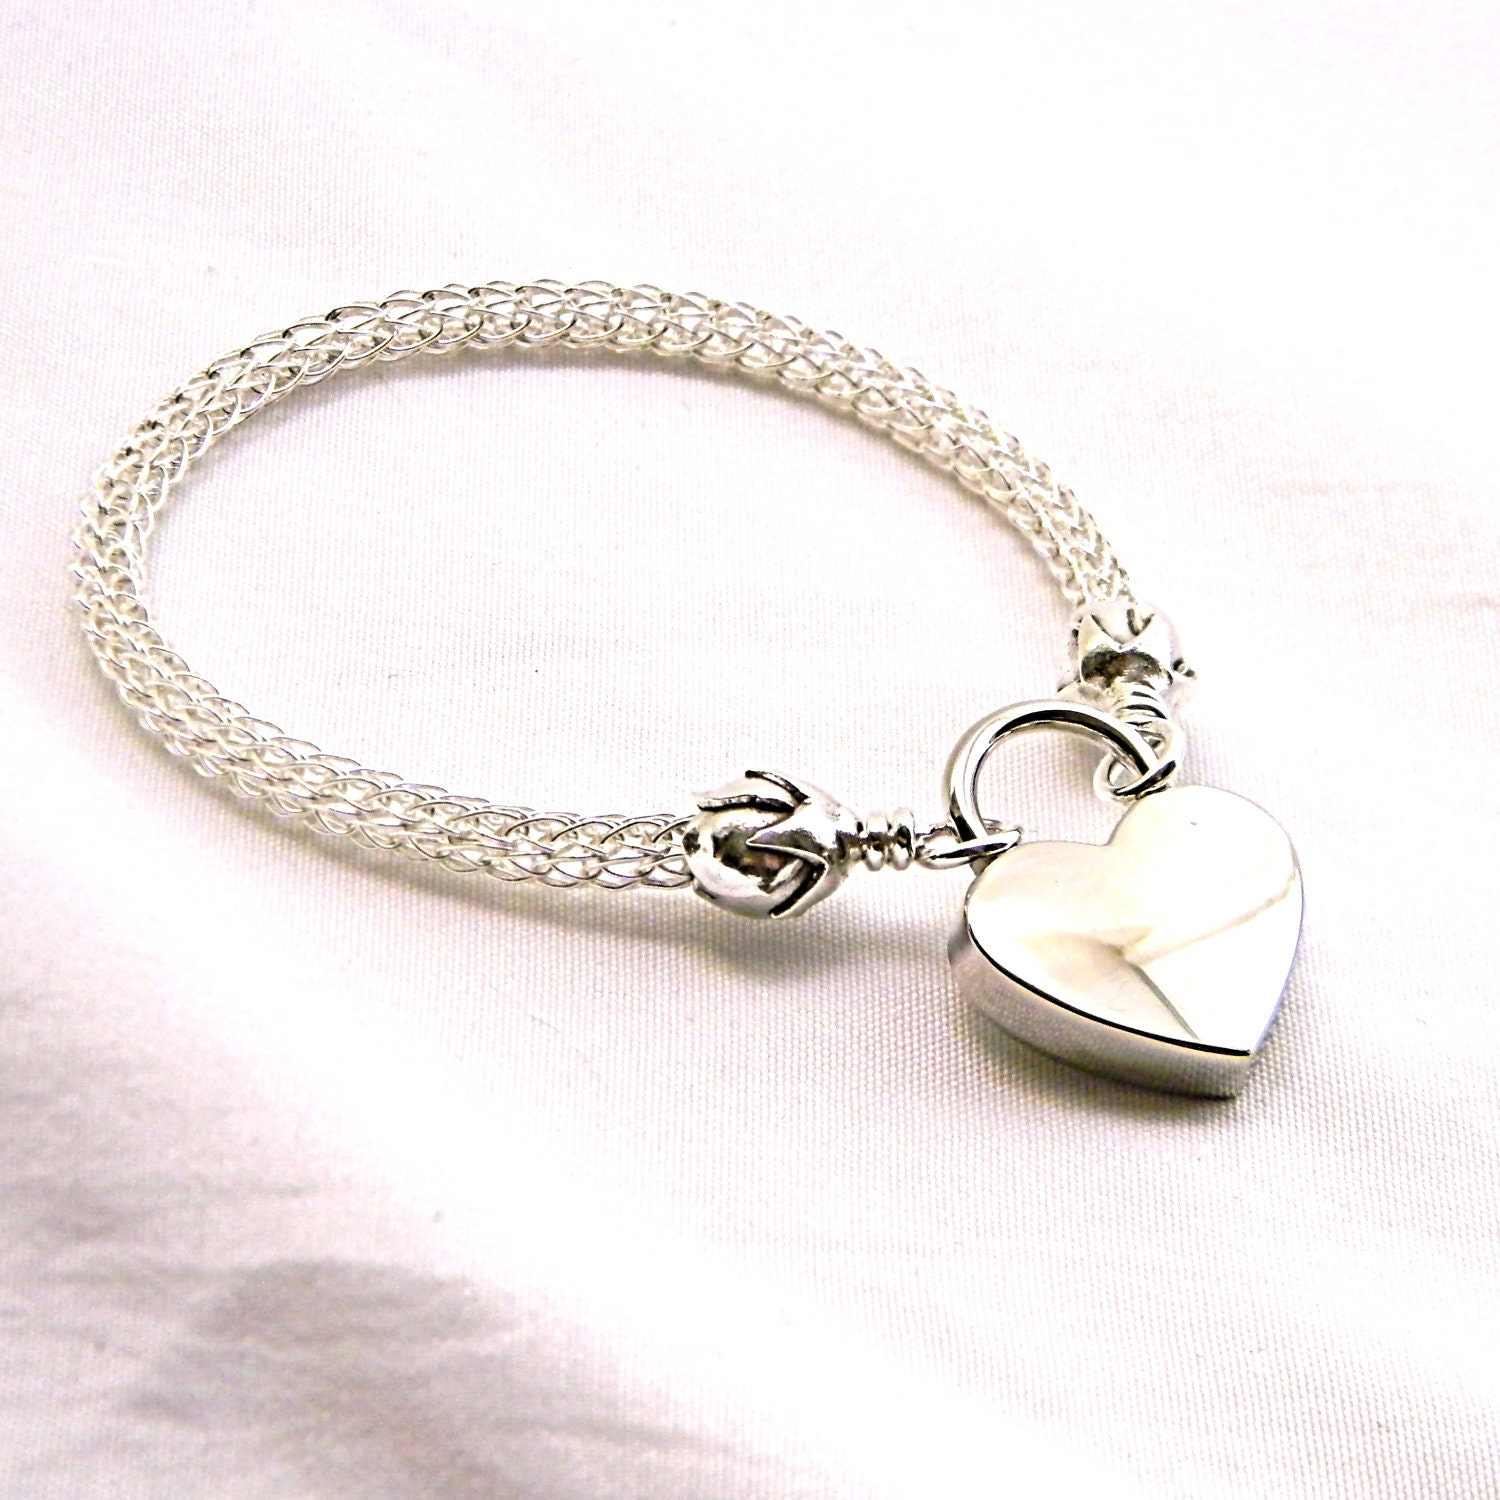 silver bracelet chain locking listing slave il bell sterling tiny little anklet fancy bdsm permanently ankle fullxfull